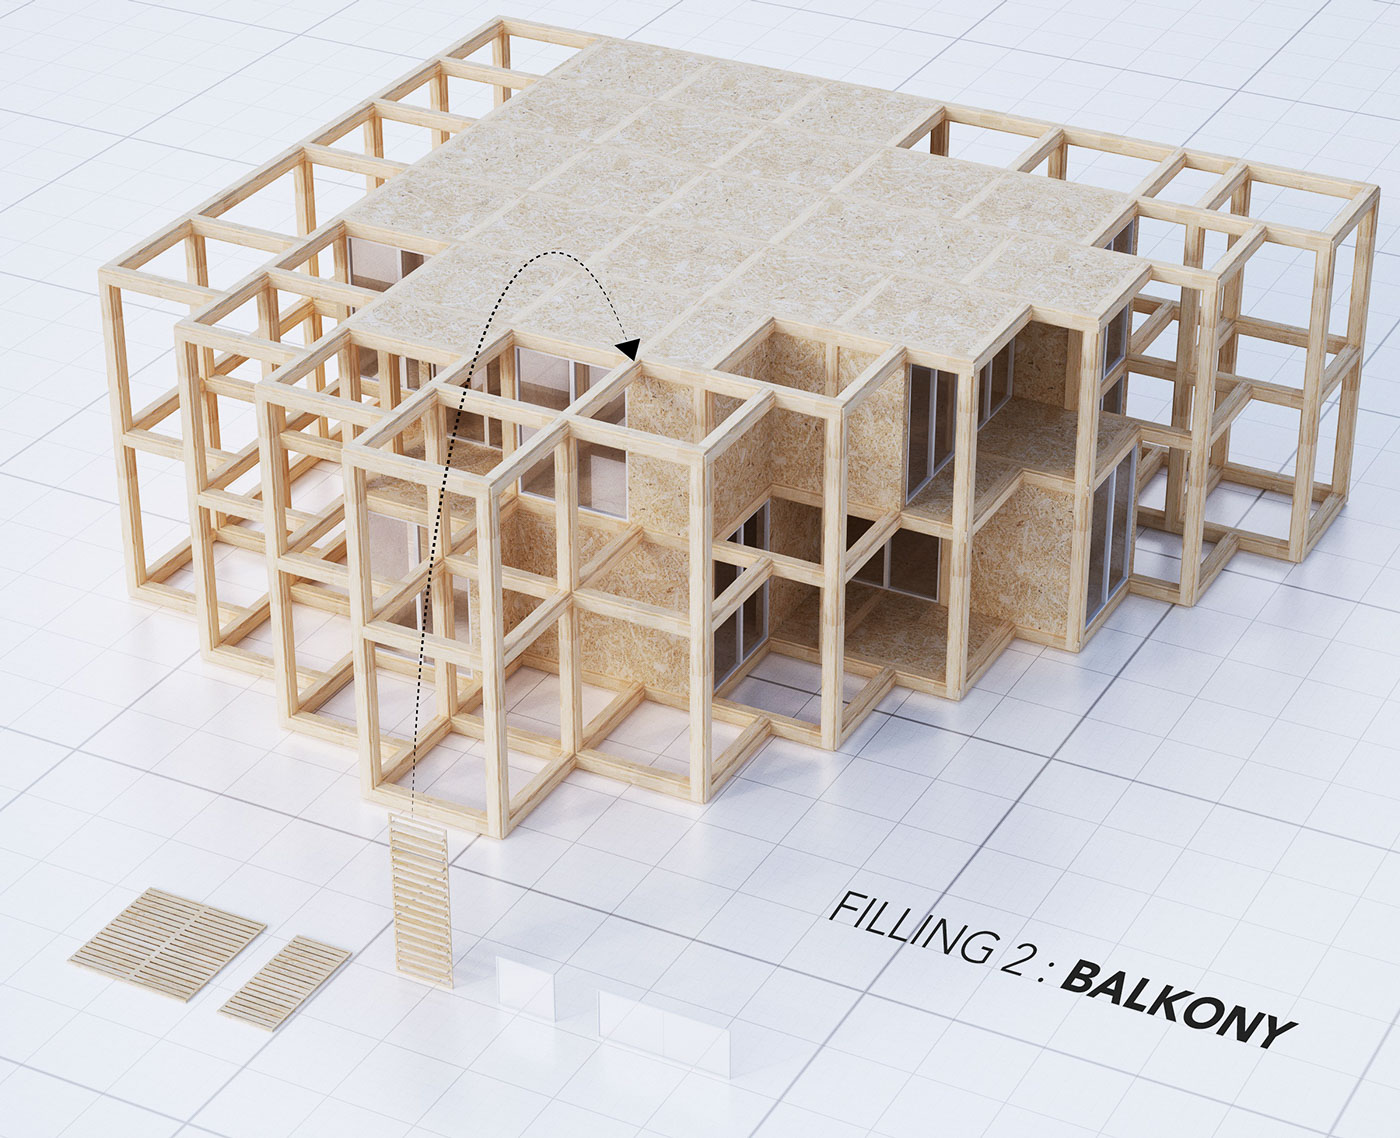 A modular system of a structural framework - balcony